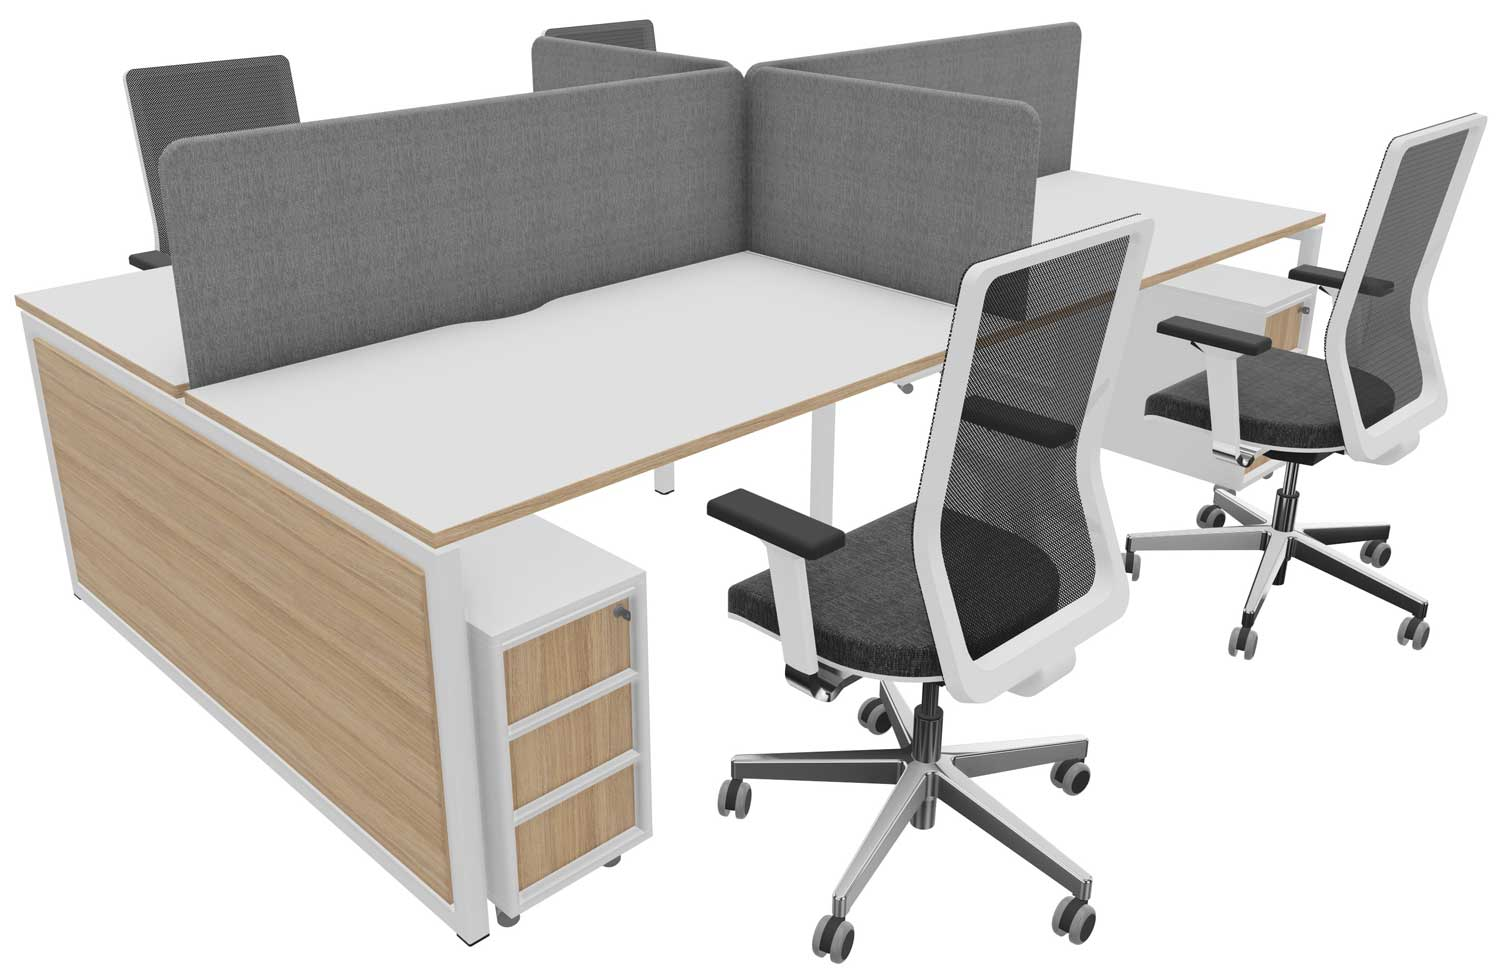 4 person bench desk with chairs, pedestals and screens for £2500 + VAT